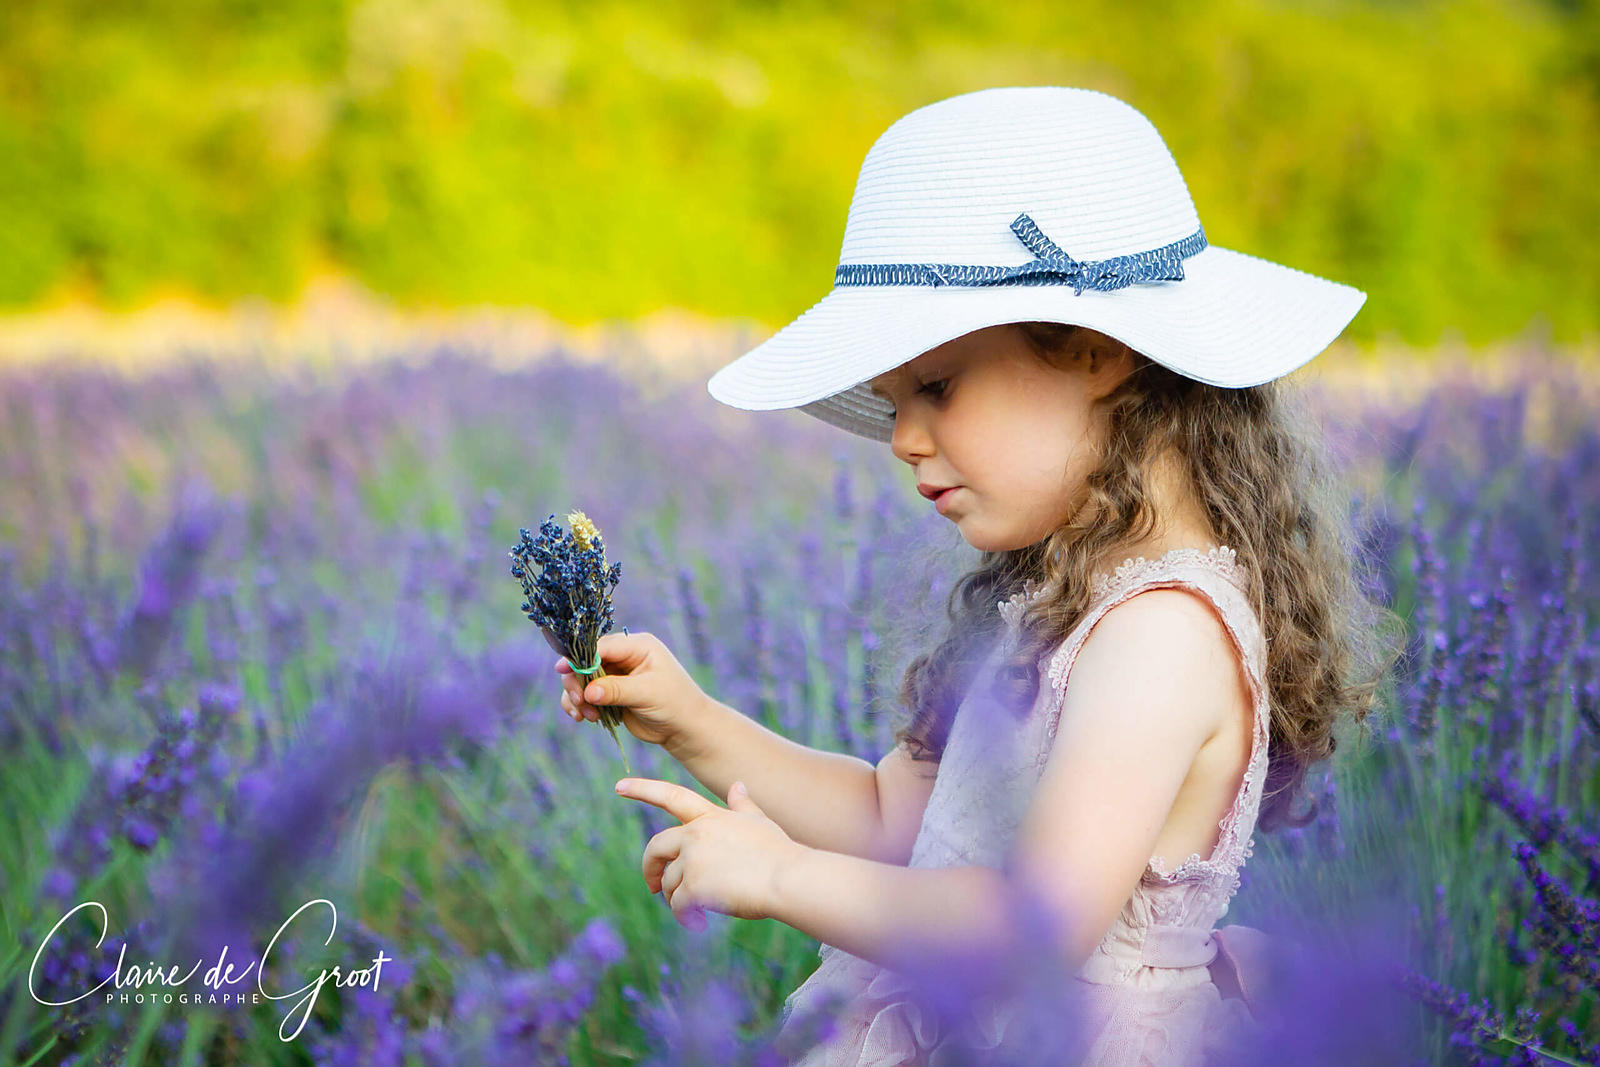 Portrait of a girl in a lavender field